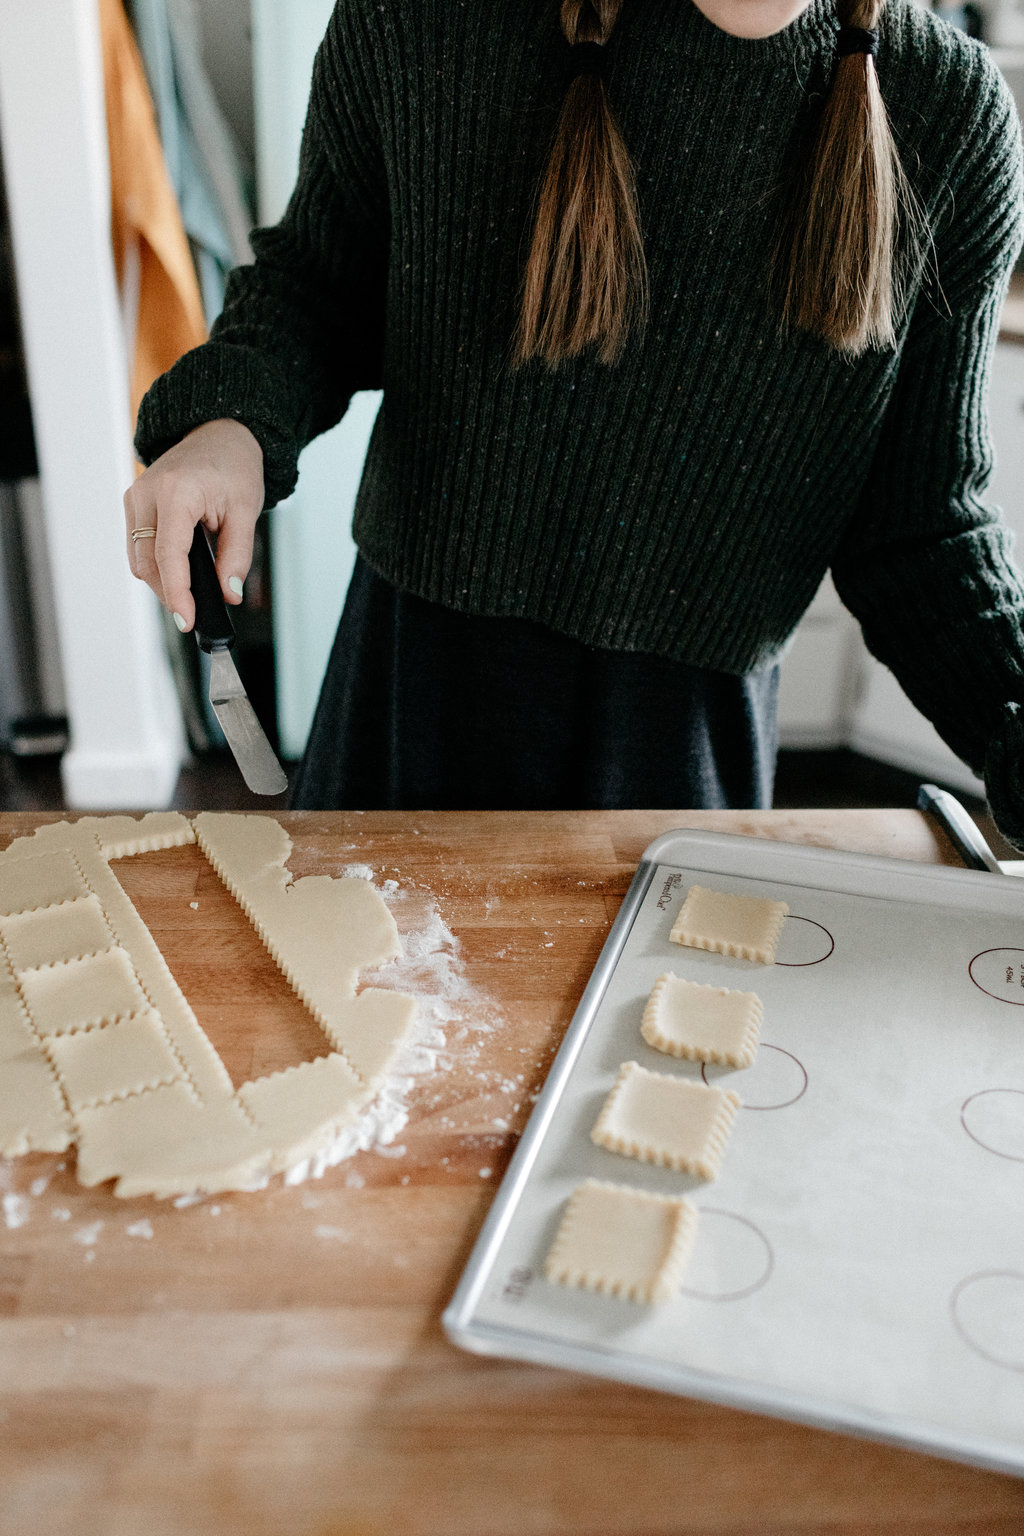 molly-yeh-pampered-chef-cookies-24.jpg